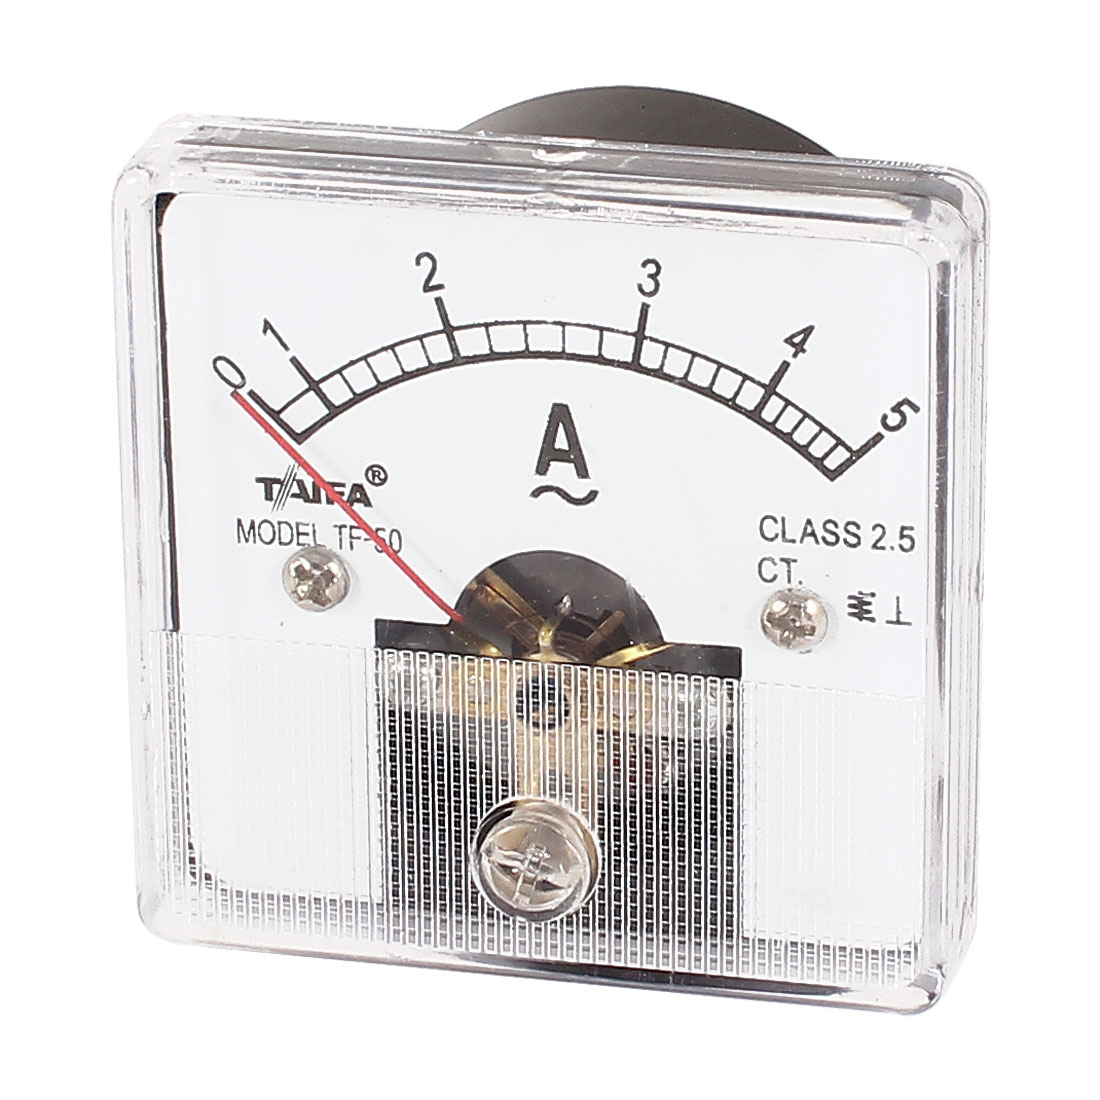 AC 5A Class 2.5 Sqaure Fine Tuning Dial Panel Ampere Meter Amperemeter